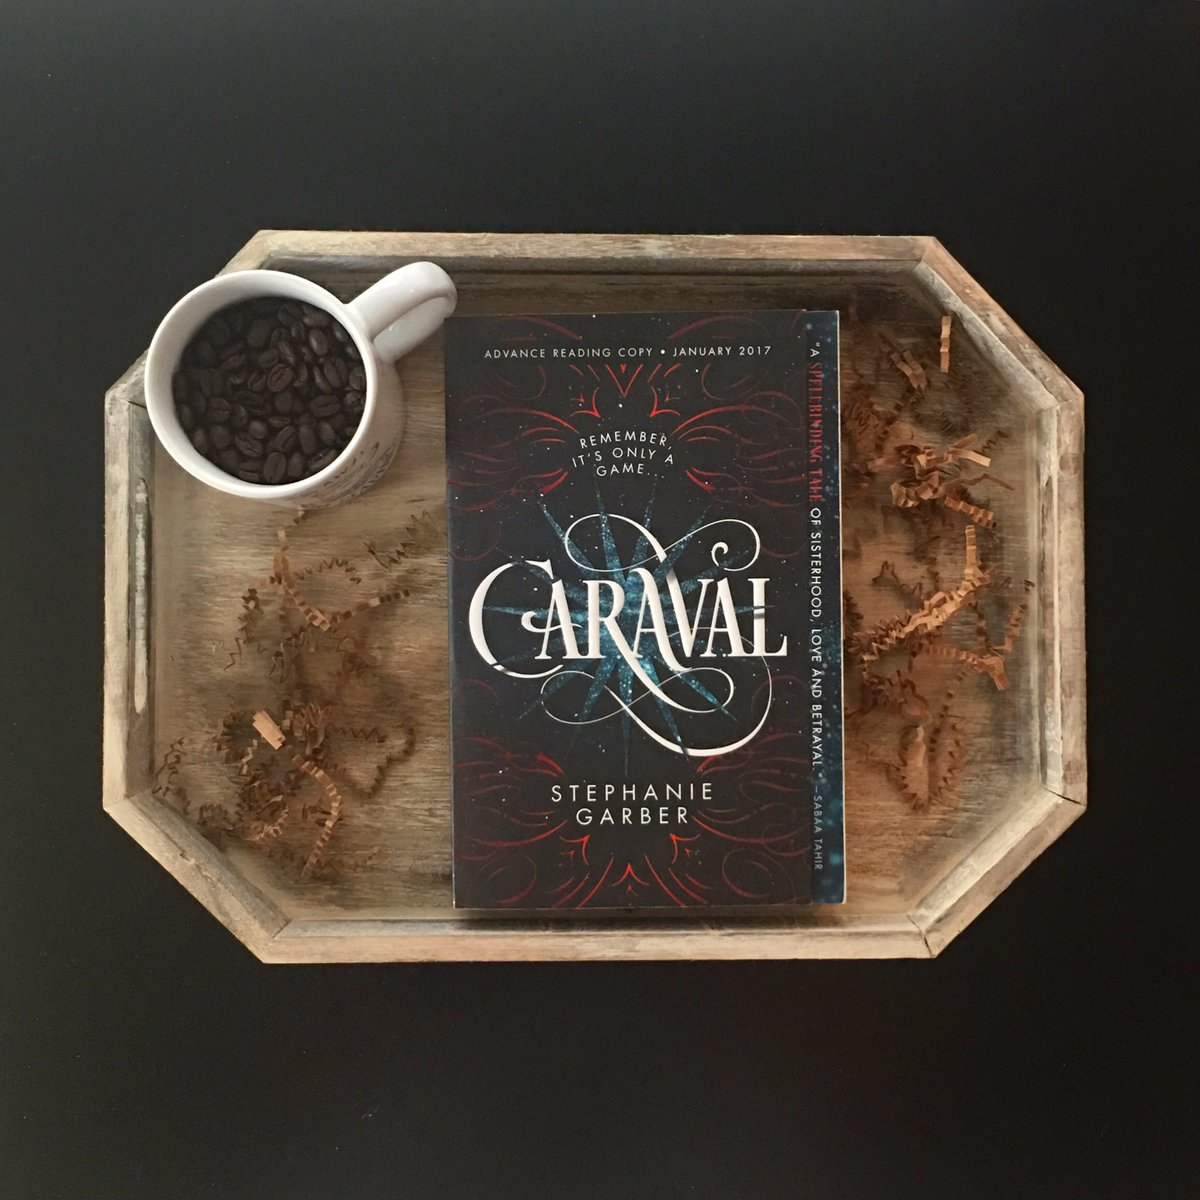 I have an extra copy of #CARAVEL! RT & follow @ReadingTeen for a chance to win. #international #giveaway Ends 6/30. https://t.co/58mLL7NH2i